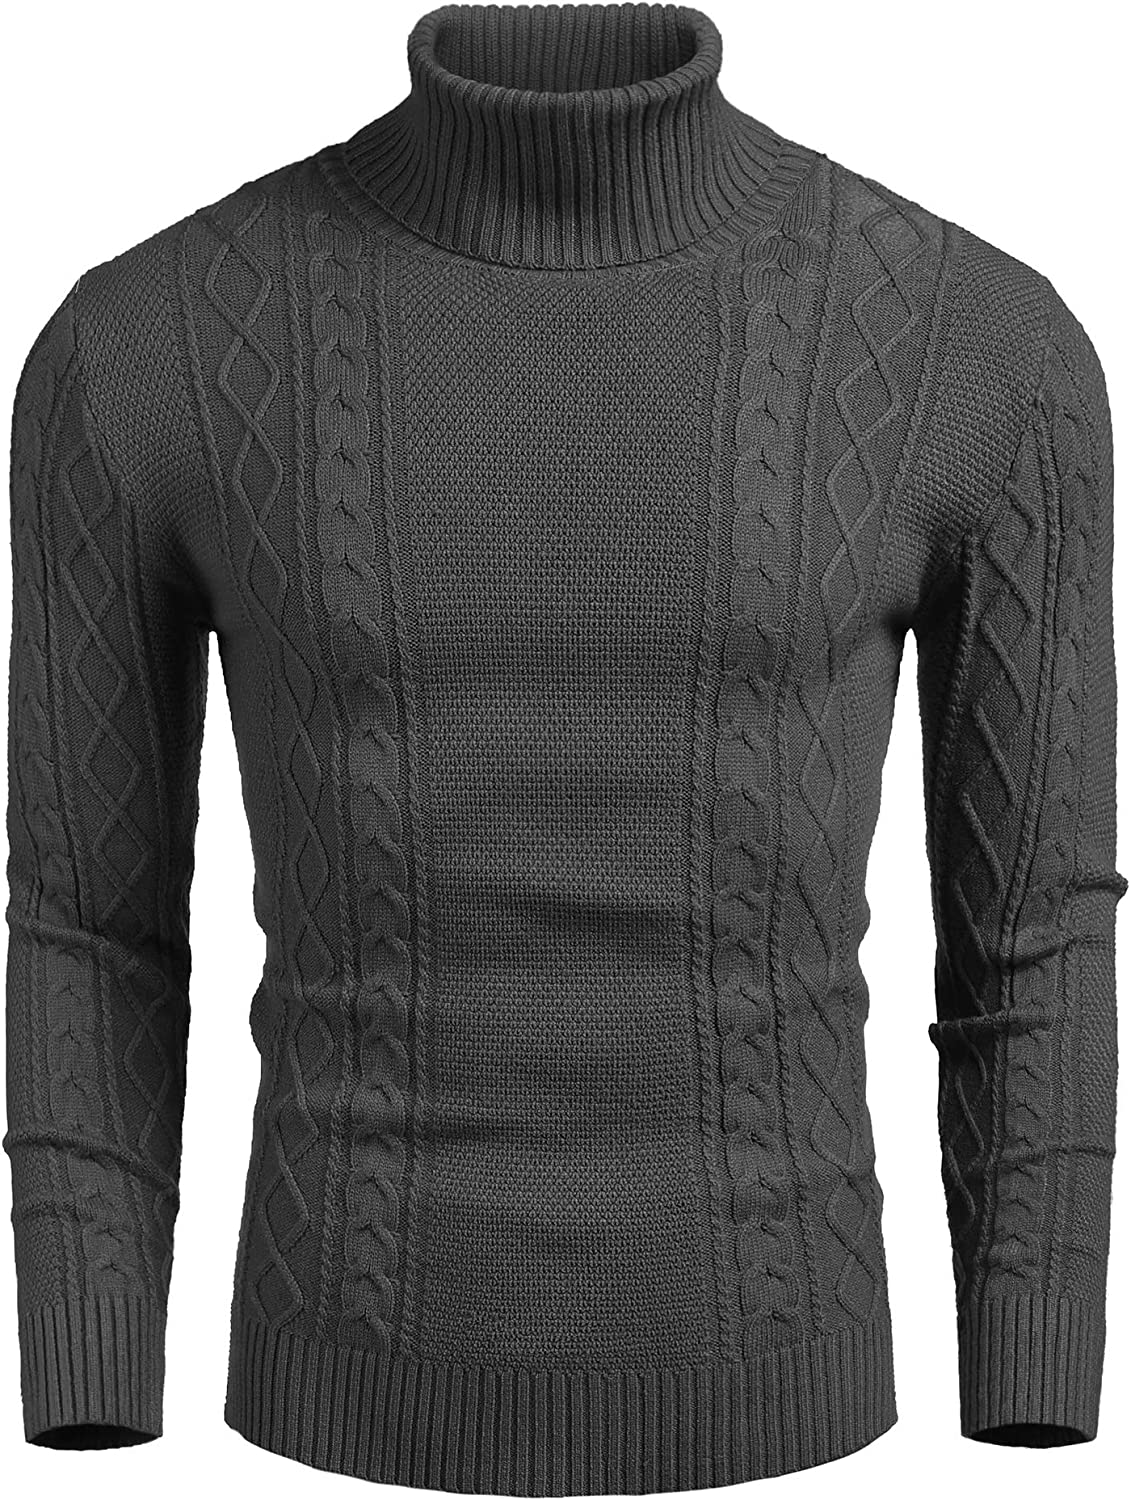 COOFANDY Men's Slim fit Turtleneck Sweater Casual Cable Knitted Pullover Sweaters